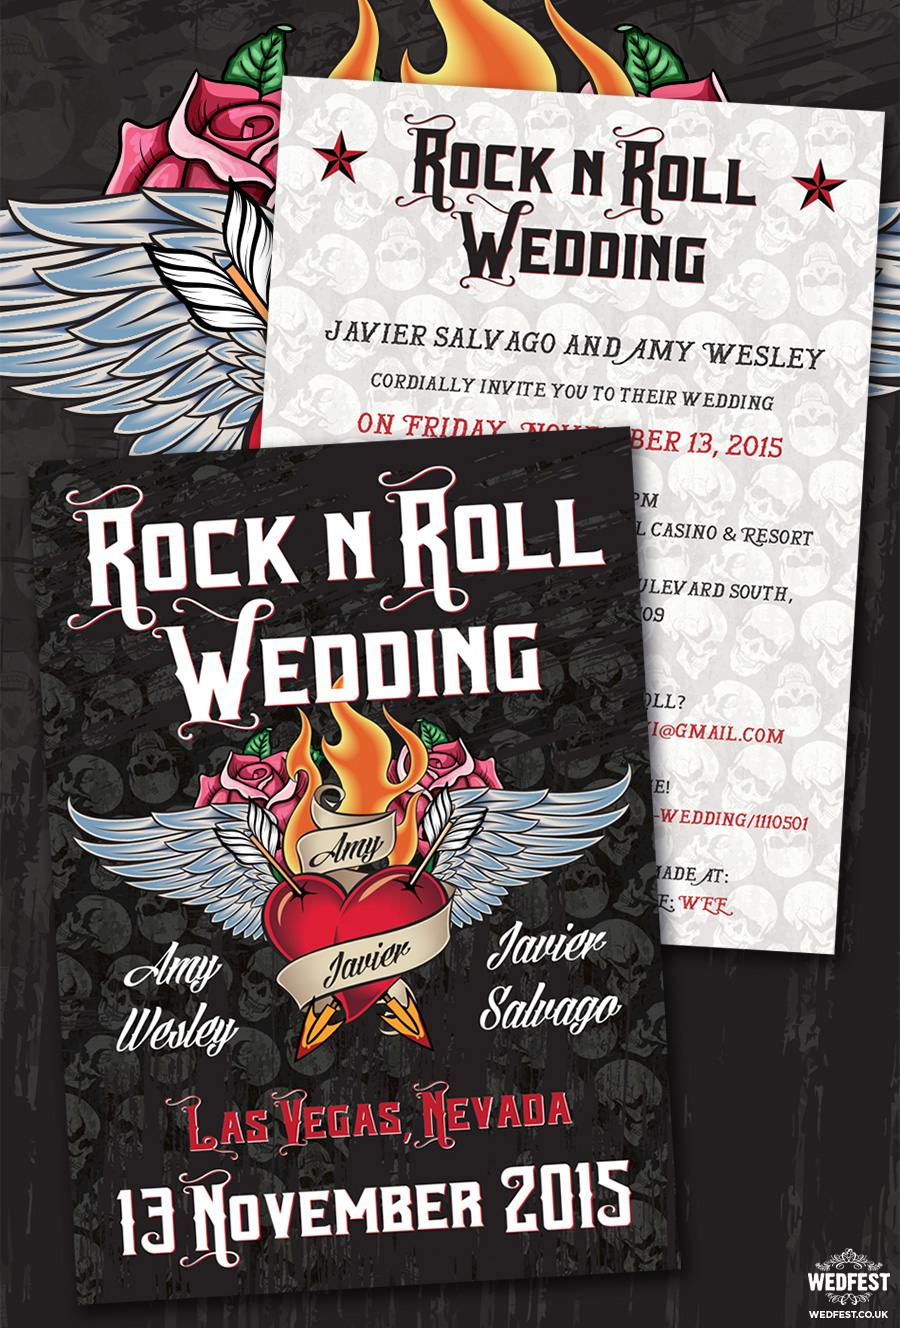 Rock n Roll Wedding Invite, Las Vegas